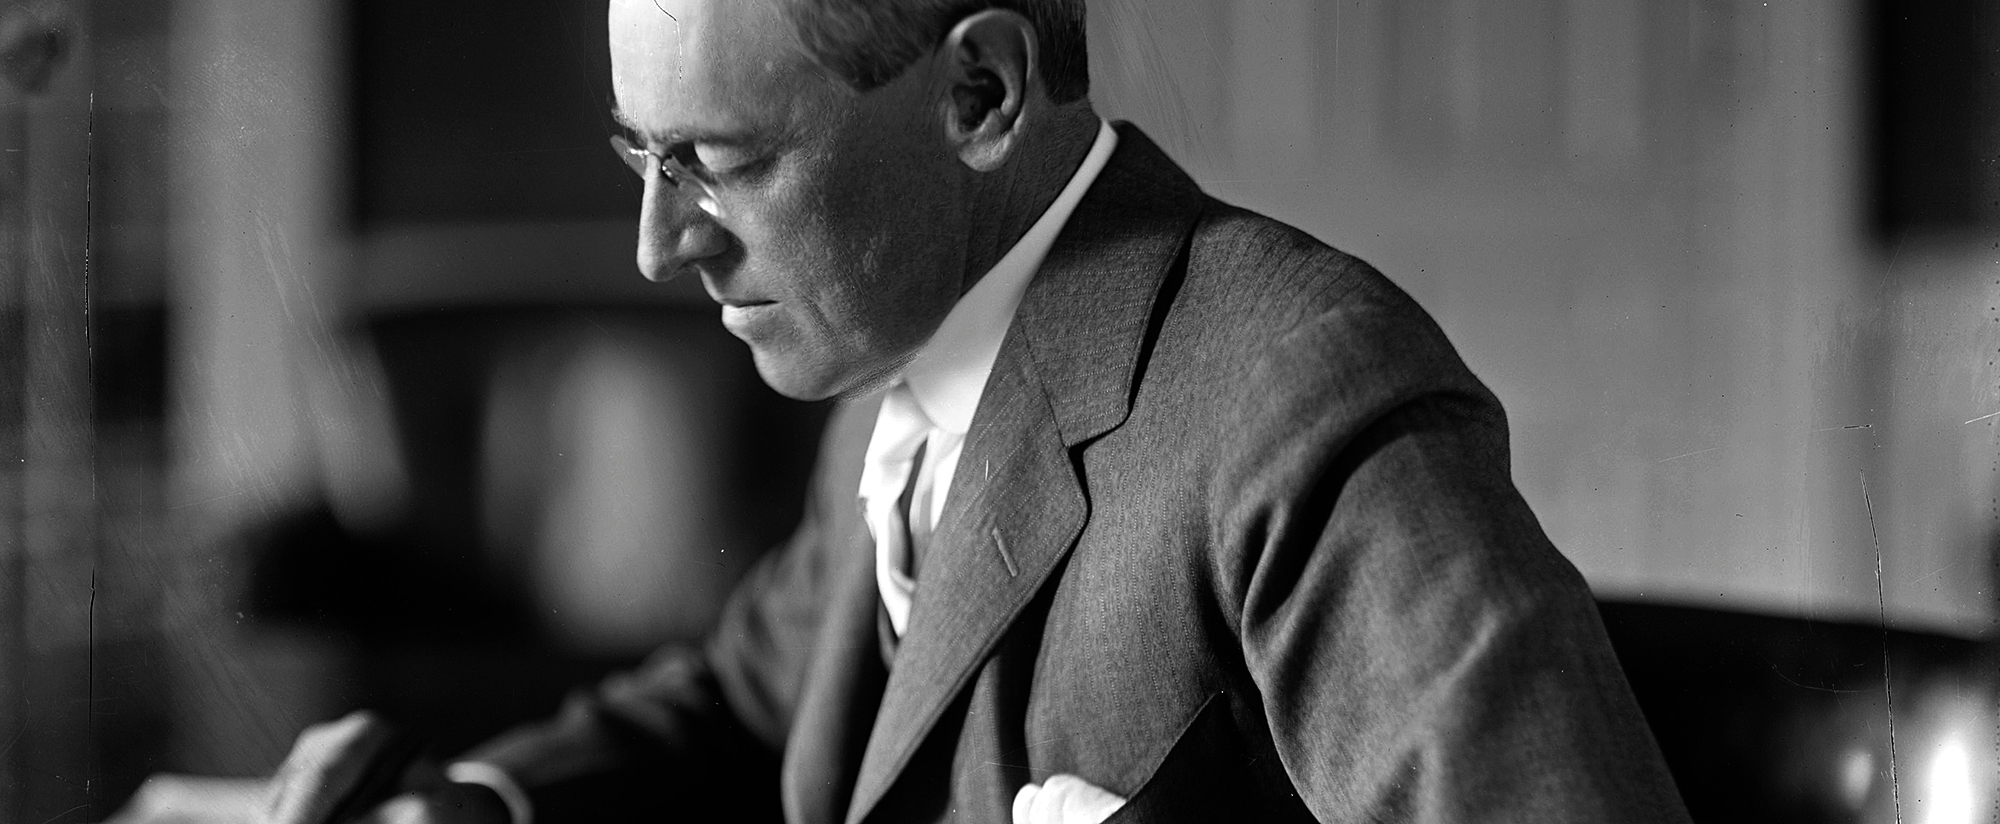 AMERICAN EXPERIENCE: The Great War - President Woodrow Wilson